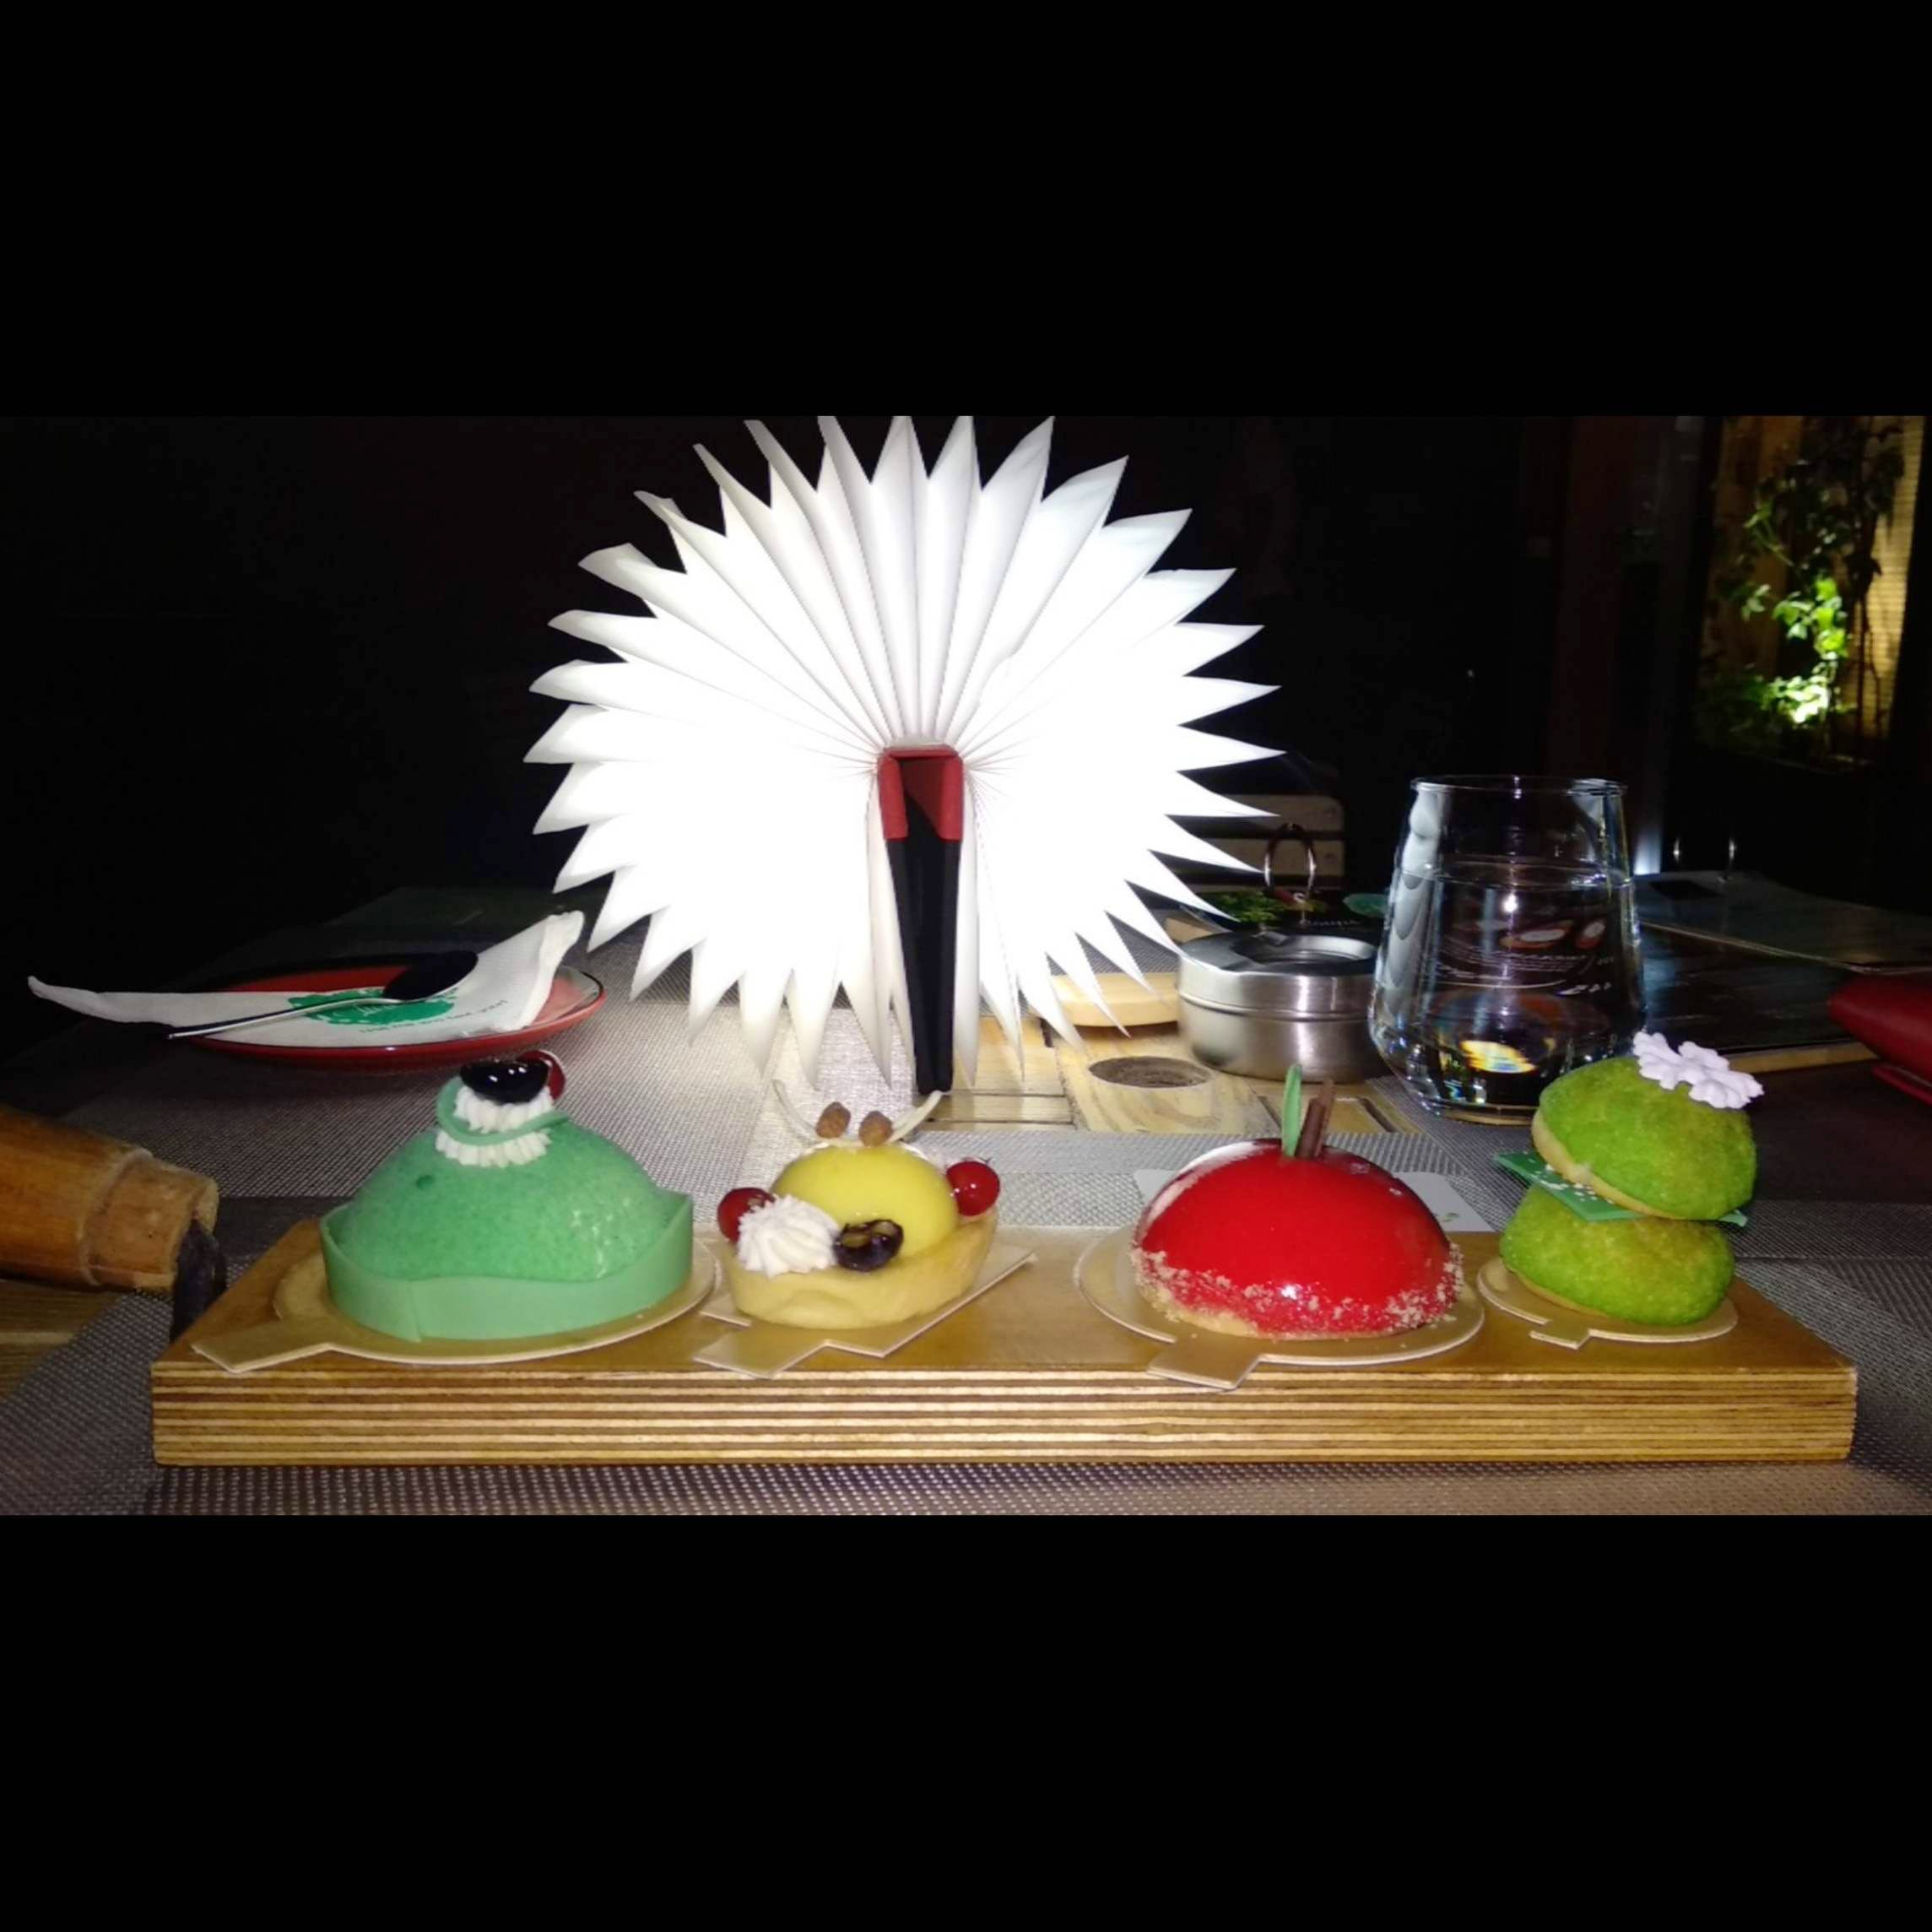 Take Your Pick: This Jubilee Hills Cafe Offers A Dessert Platter For INR 249